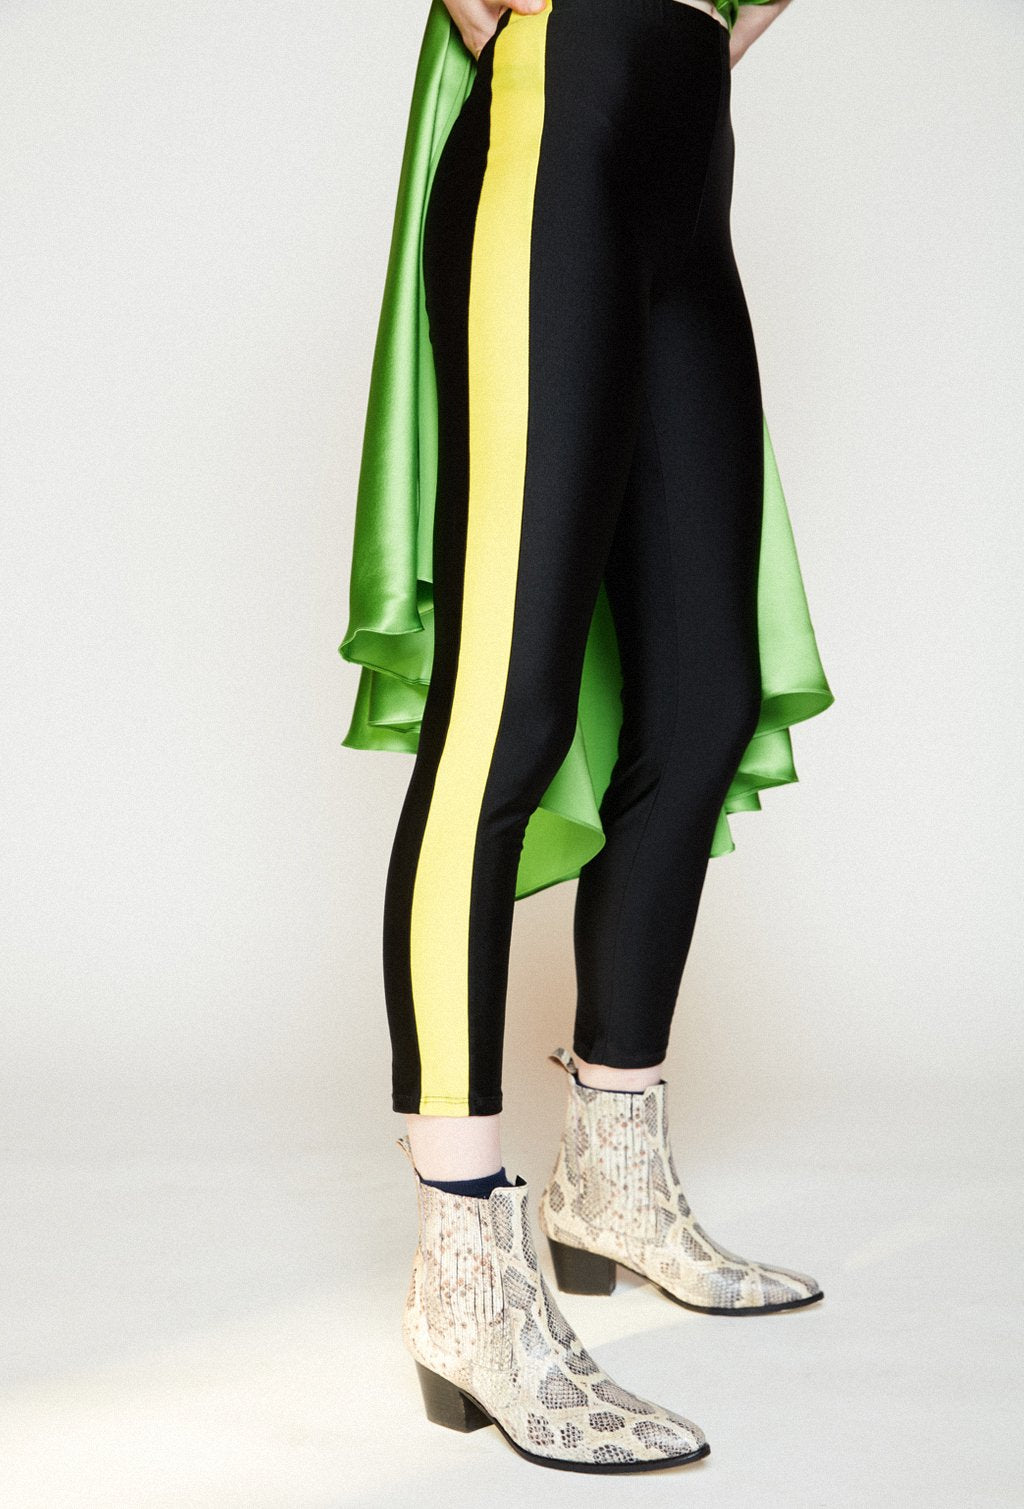 ADIDAS BLACK LEGGINGS WITH YELLOW STRIPES